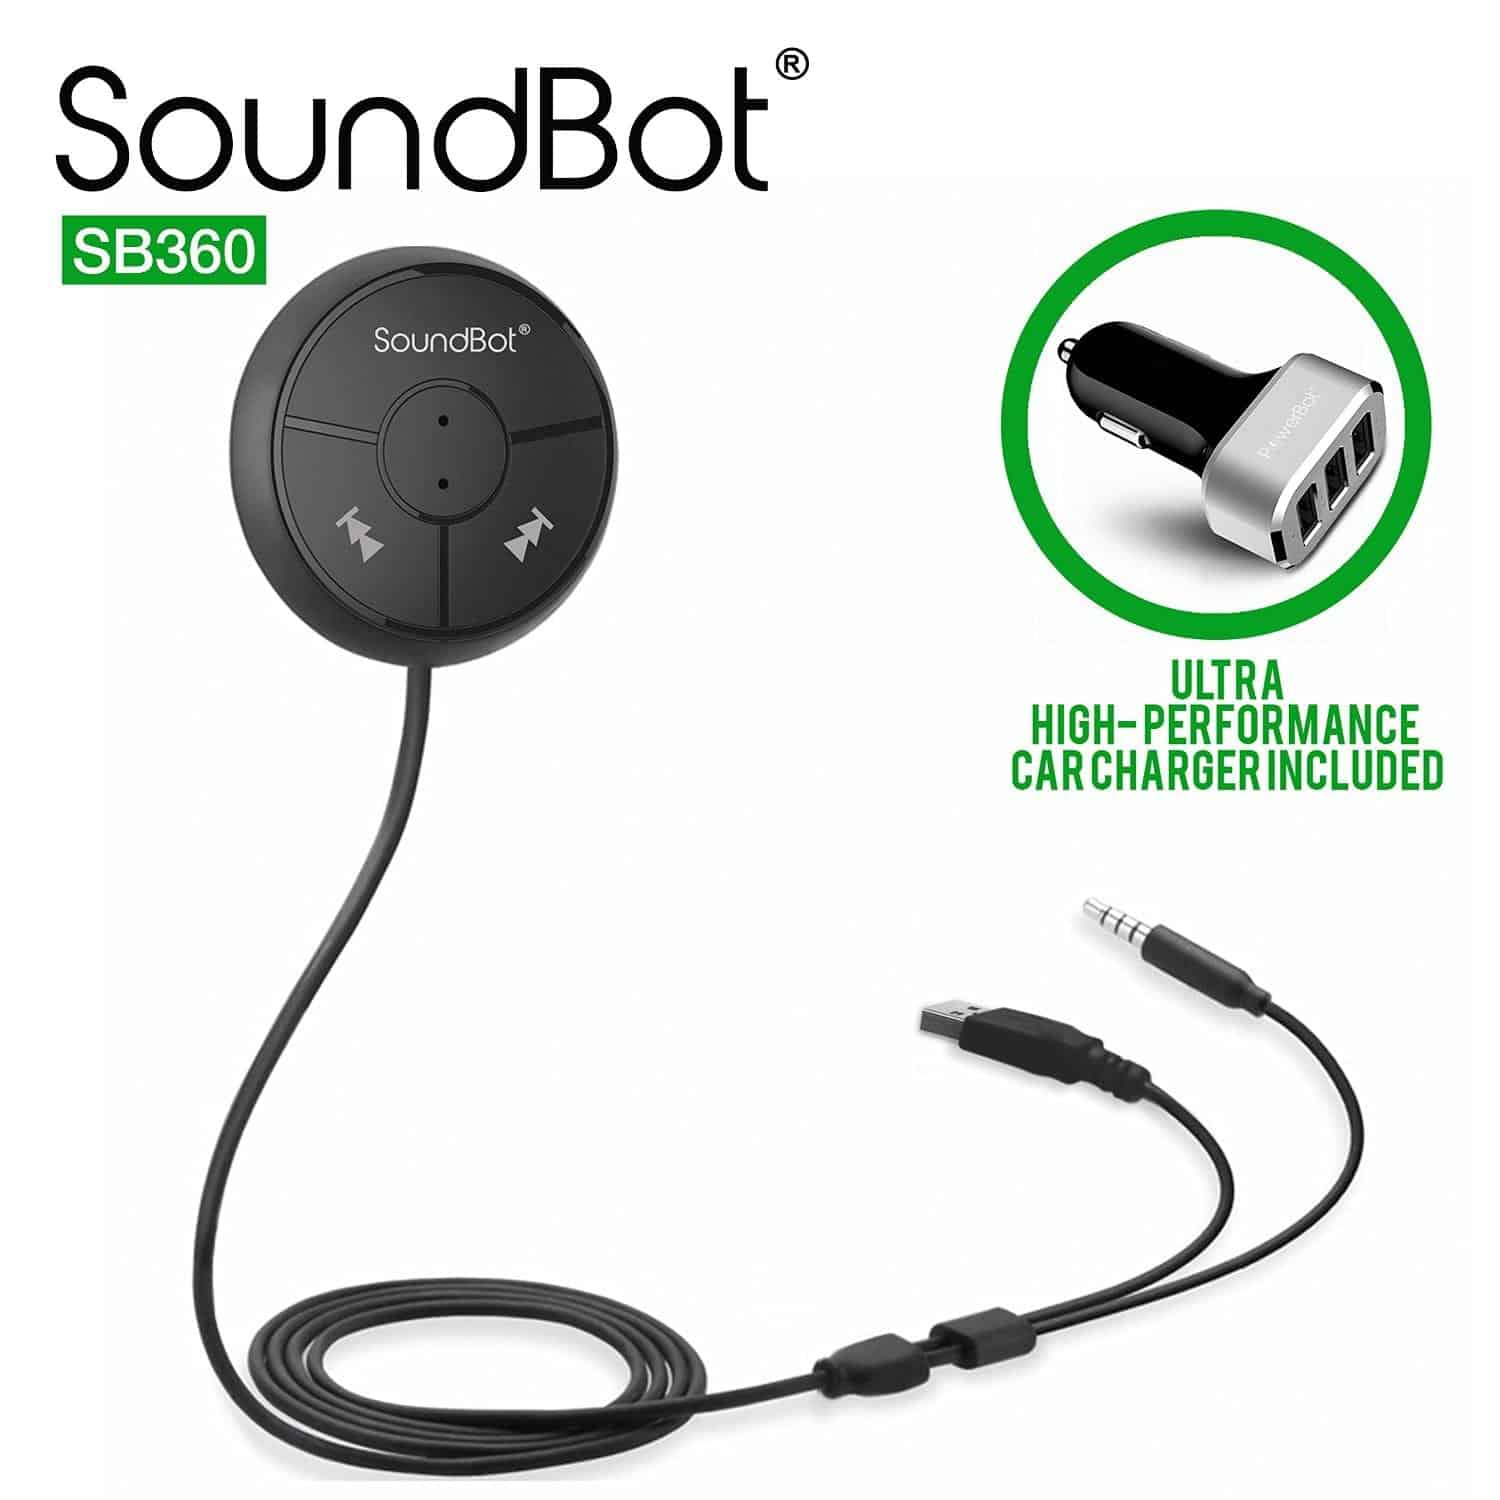 soundbot-sb360-bluetooth-4-0-car-kit